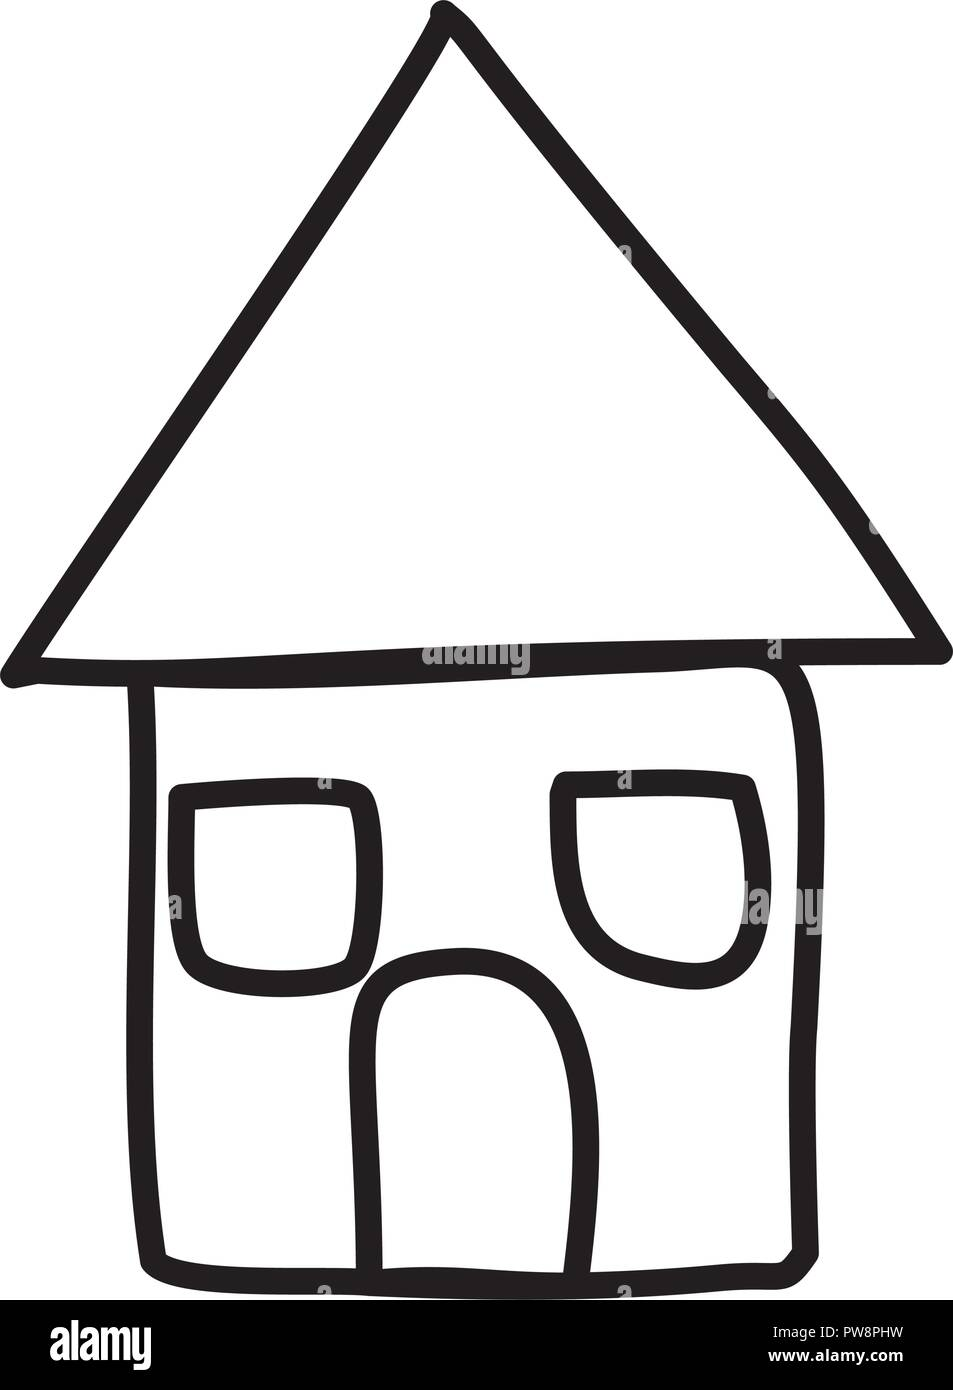 cute house drawing icon - Stock Vector